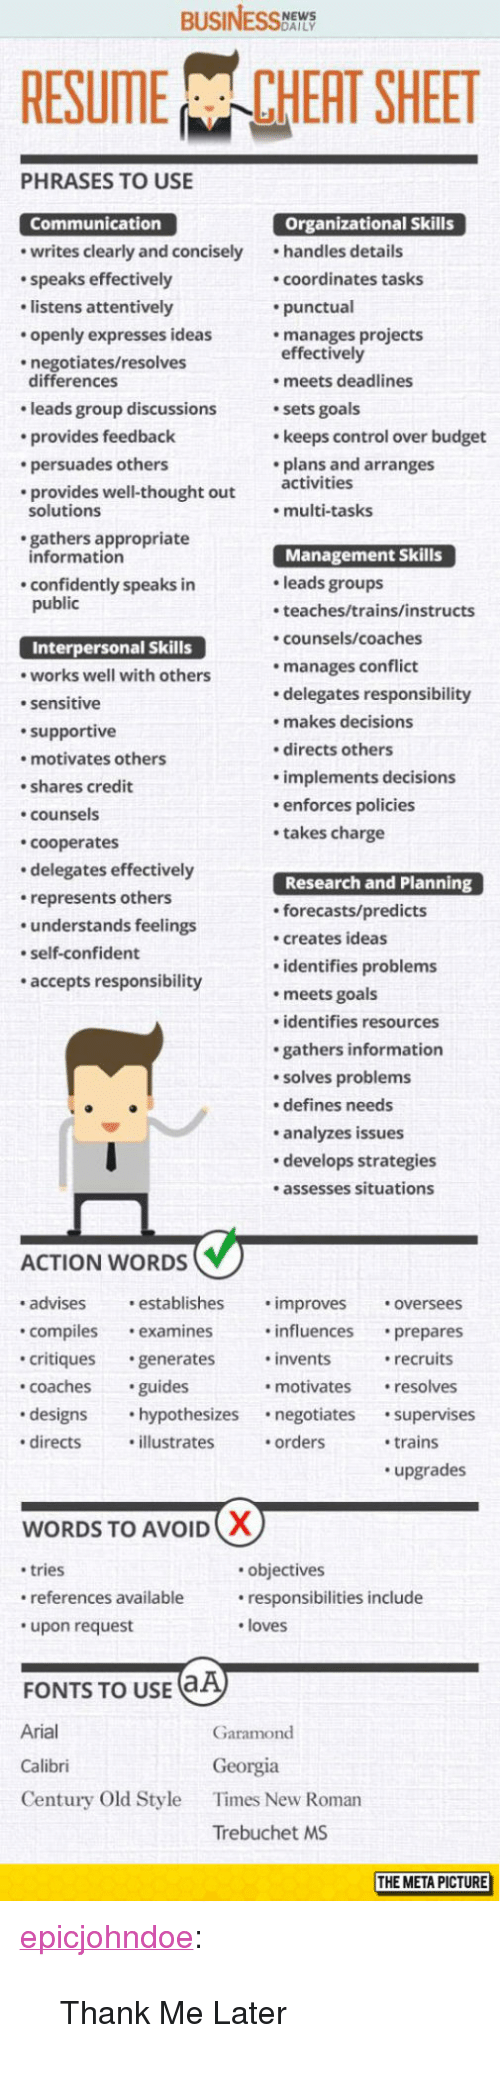 """Coordinates: BUSINESS  RESUME CHEAT SHEET  PHRASES TO USE  Organizational Skills  Communication  writes clearly and concisely handles details  speaks effectively  listens attentively  openly expresses ideas  negotiates/resolves  coordinates tasks  punctual  manages projects  effectively  differences  leads group discussions  provides feedback  persuades others  provides well-thought out ctivities  . meets deadlines  sets goals  keeps control over budget  plans and arranges  solutions  multi-tasks  gathers appropriate  Management Skills  leads groups  teaches/trains/instructs  counsels/coaches  manages conflict  delegates responsibility  makes decisions  directs others  implements decisions  enforces policies  takes charge  information  confidently speaks in  public  Interpersonal Skills  works well with others  sensitive  supportive  motivates others  shares credit  counsels  cooperates  delegates effectively  represents others  understands feelings  self-confident  accepts responsibility  Research and Planning  forecasts/predicts  creates ideas  identifies problems  meets goals  identifies resources  gathers information  solves problems  defines needs  analyzes issues  develops strategies  .assesses situations  ACTION WORDS  advises establishes .improves oversees  compilesexamines influences prepares  critiques generates invents  coachesguides  designs hypothesizes negotiates supervises  directsillustrates .orders  recruits  resolves  motivates  trains  upgrades  WORDS TO AVOID  tries  references available  upon request  objectives  responsibilities include  loves  FONTS TO USE  Arial  Calibri  Century Old Style  Garamond  Georgia  Times New Roman  Trebuchet MS  THE META PICTURE <p><a href=""""https://epicjohndoe.tumblr.com/post/172872405684/thank-me-later"""" class=""""tumblr_blog"""">epicjohndoe</a>:</p>  <blockquote><p>Thank Me Later</p></blockquote>"""